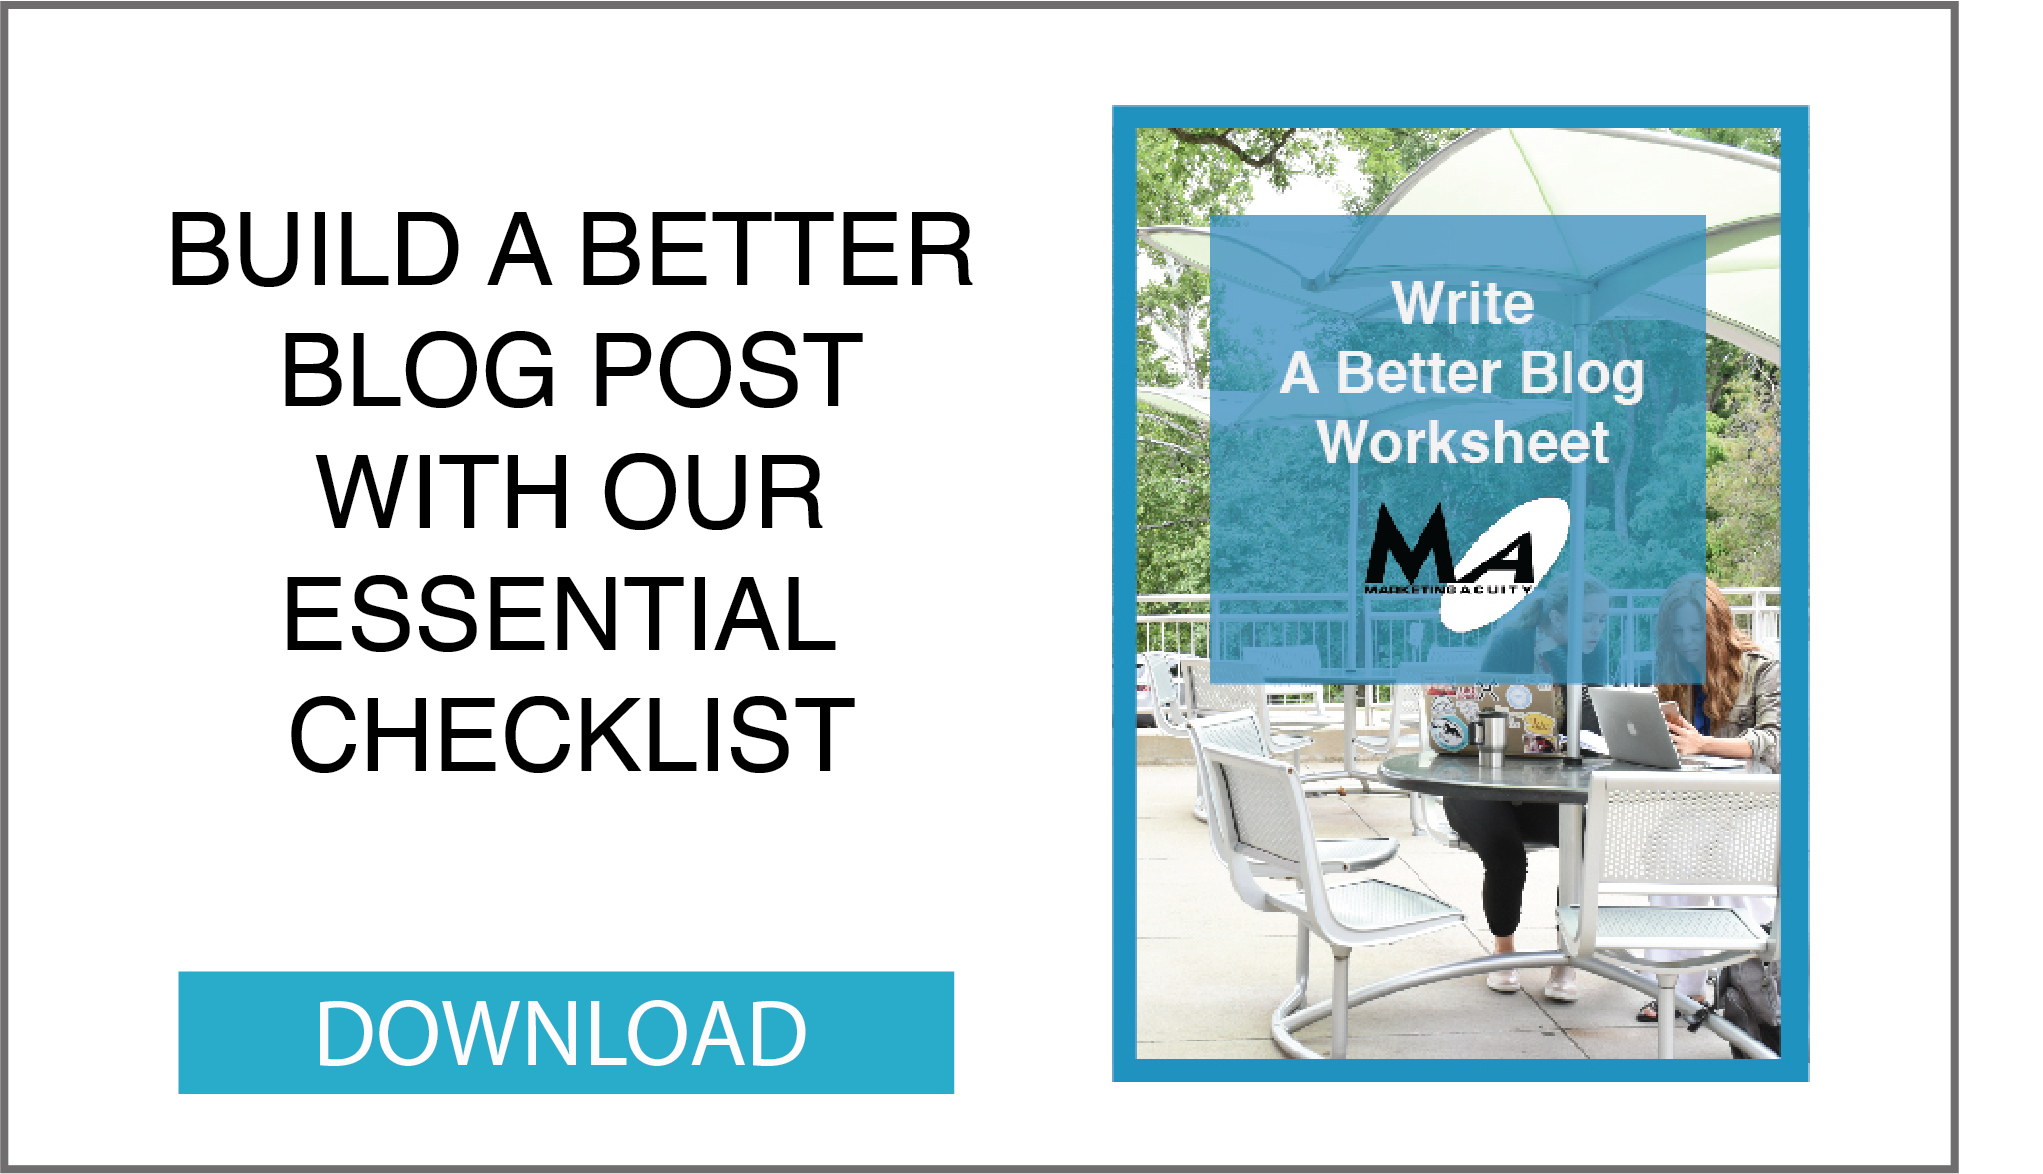 Download the Better Blogging Checklist Worksheet